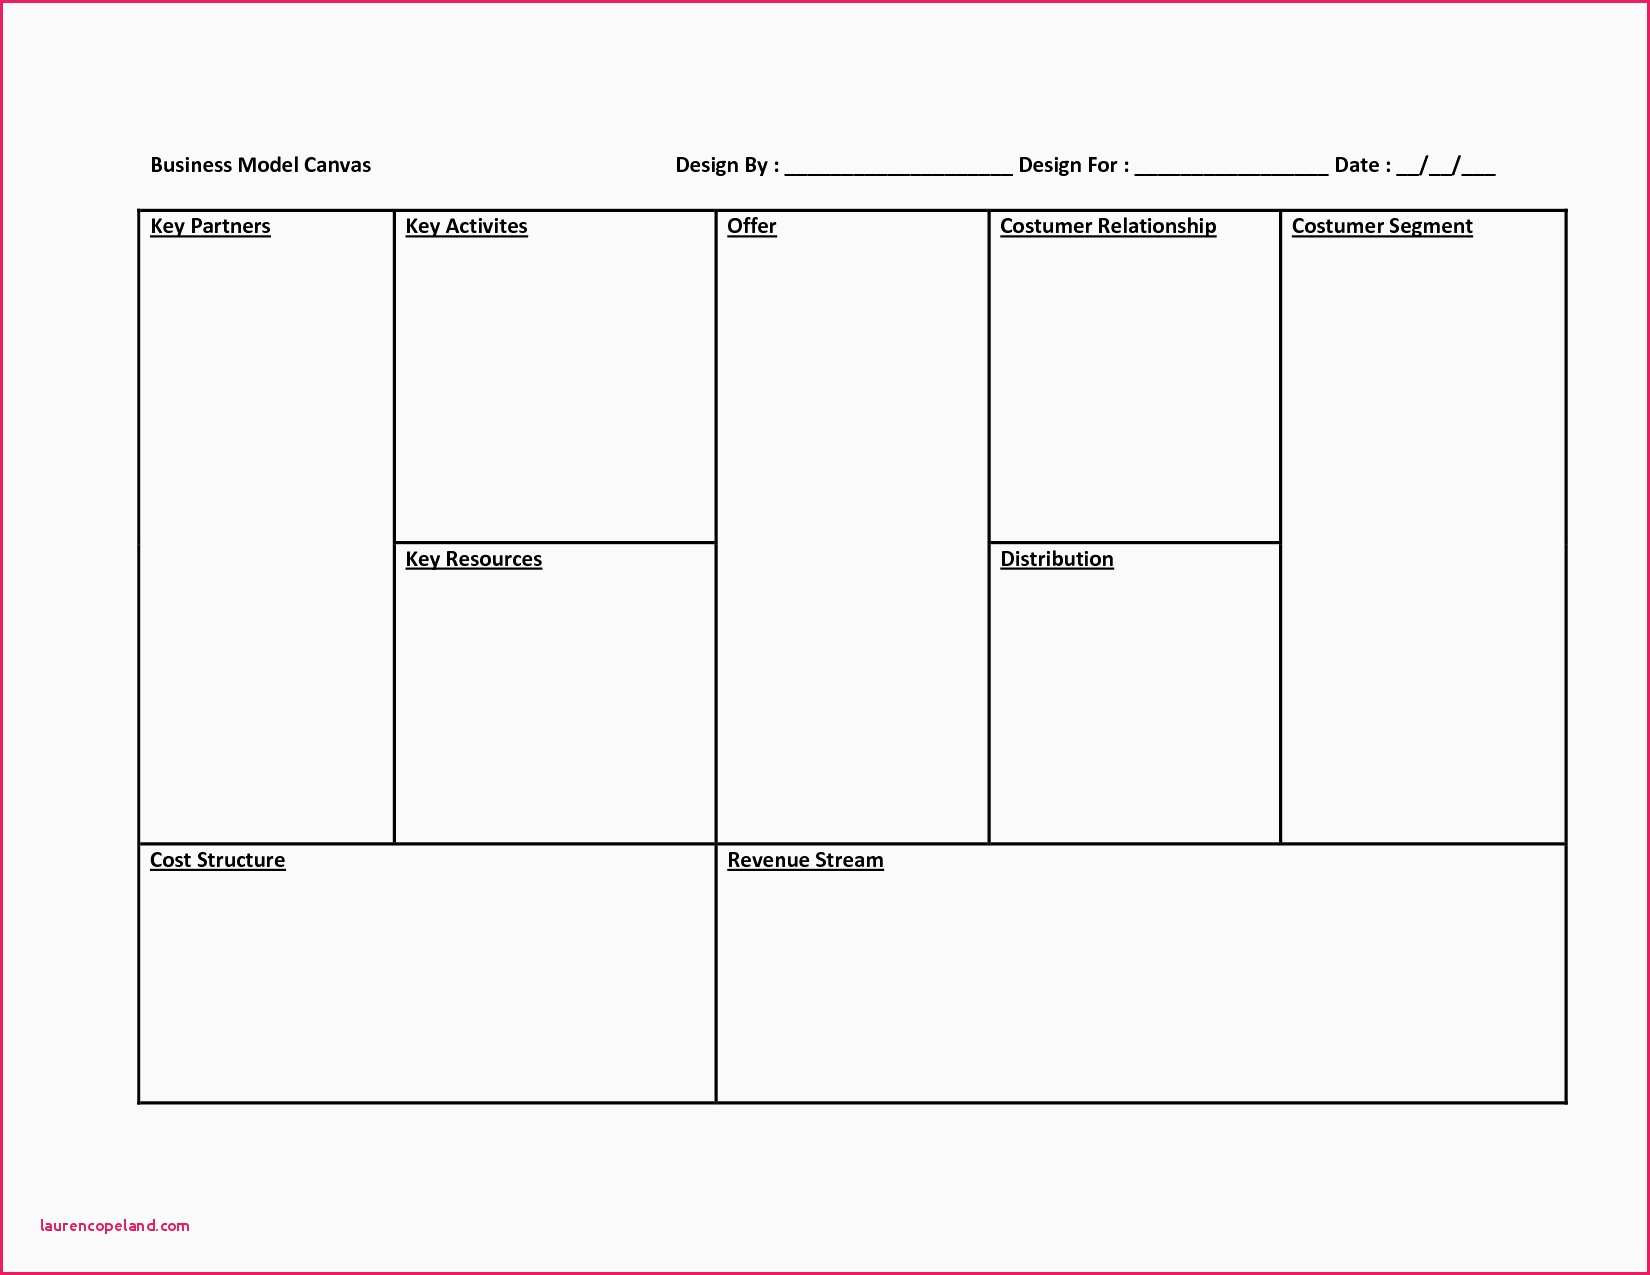 Business Model Canvas Template Word - Atlantaauctionco In Business Model Canvas Template Word